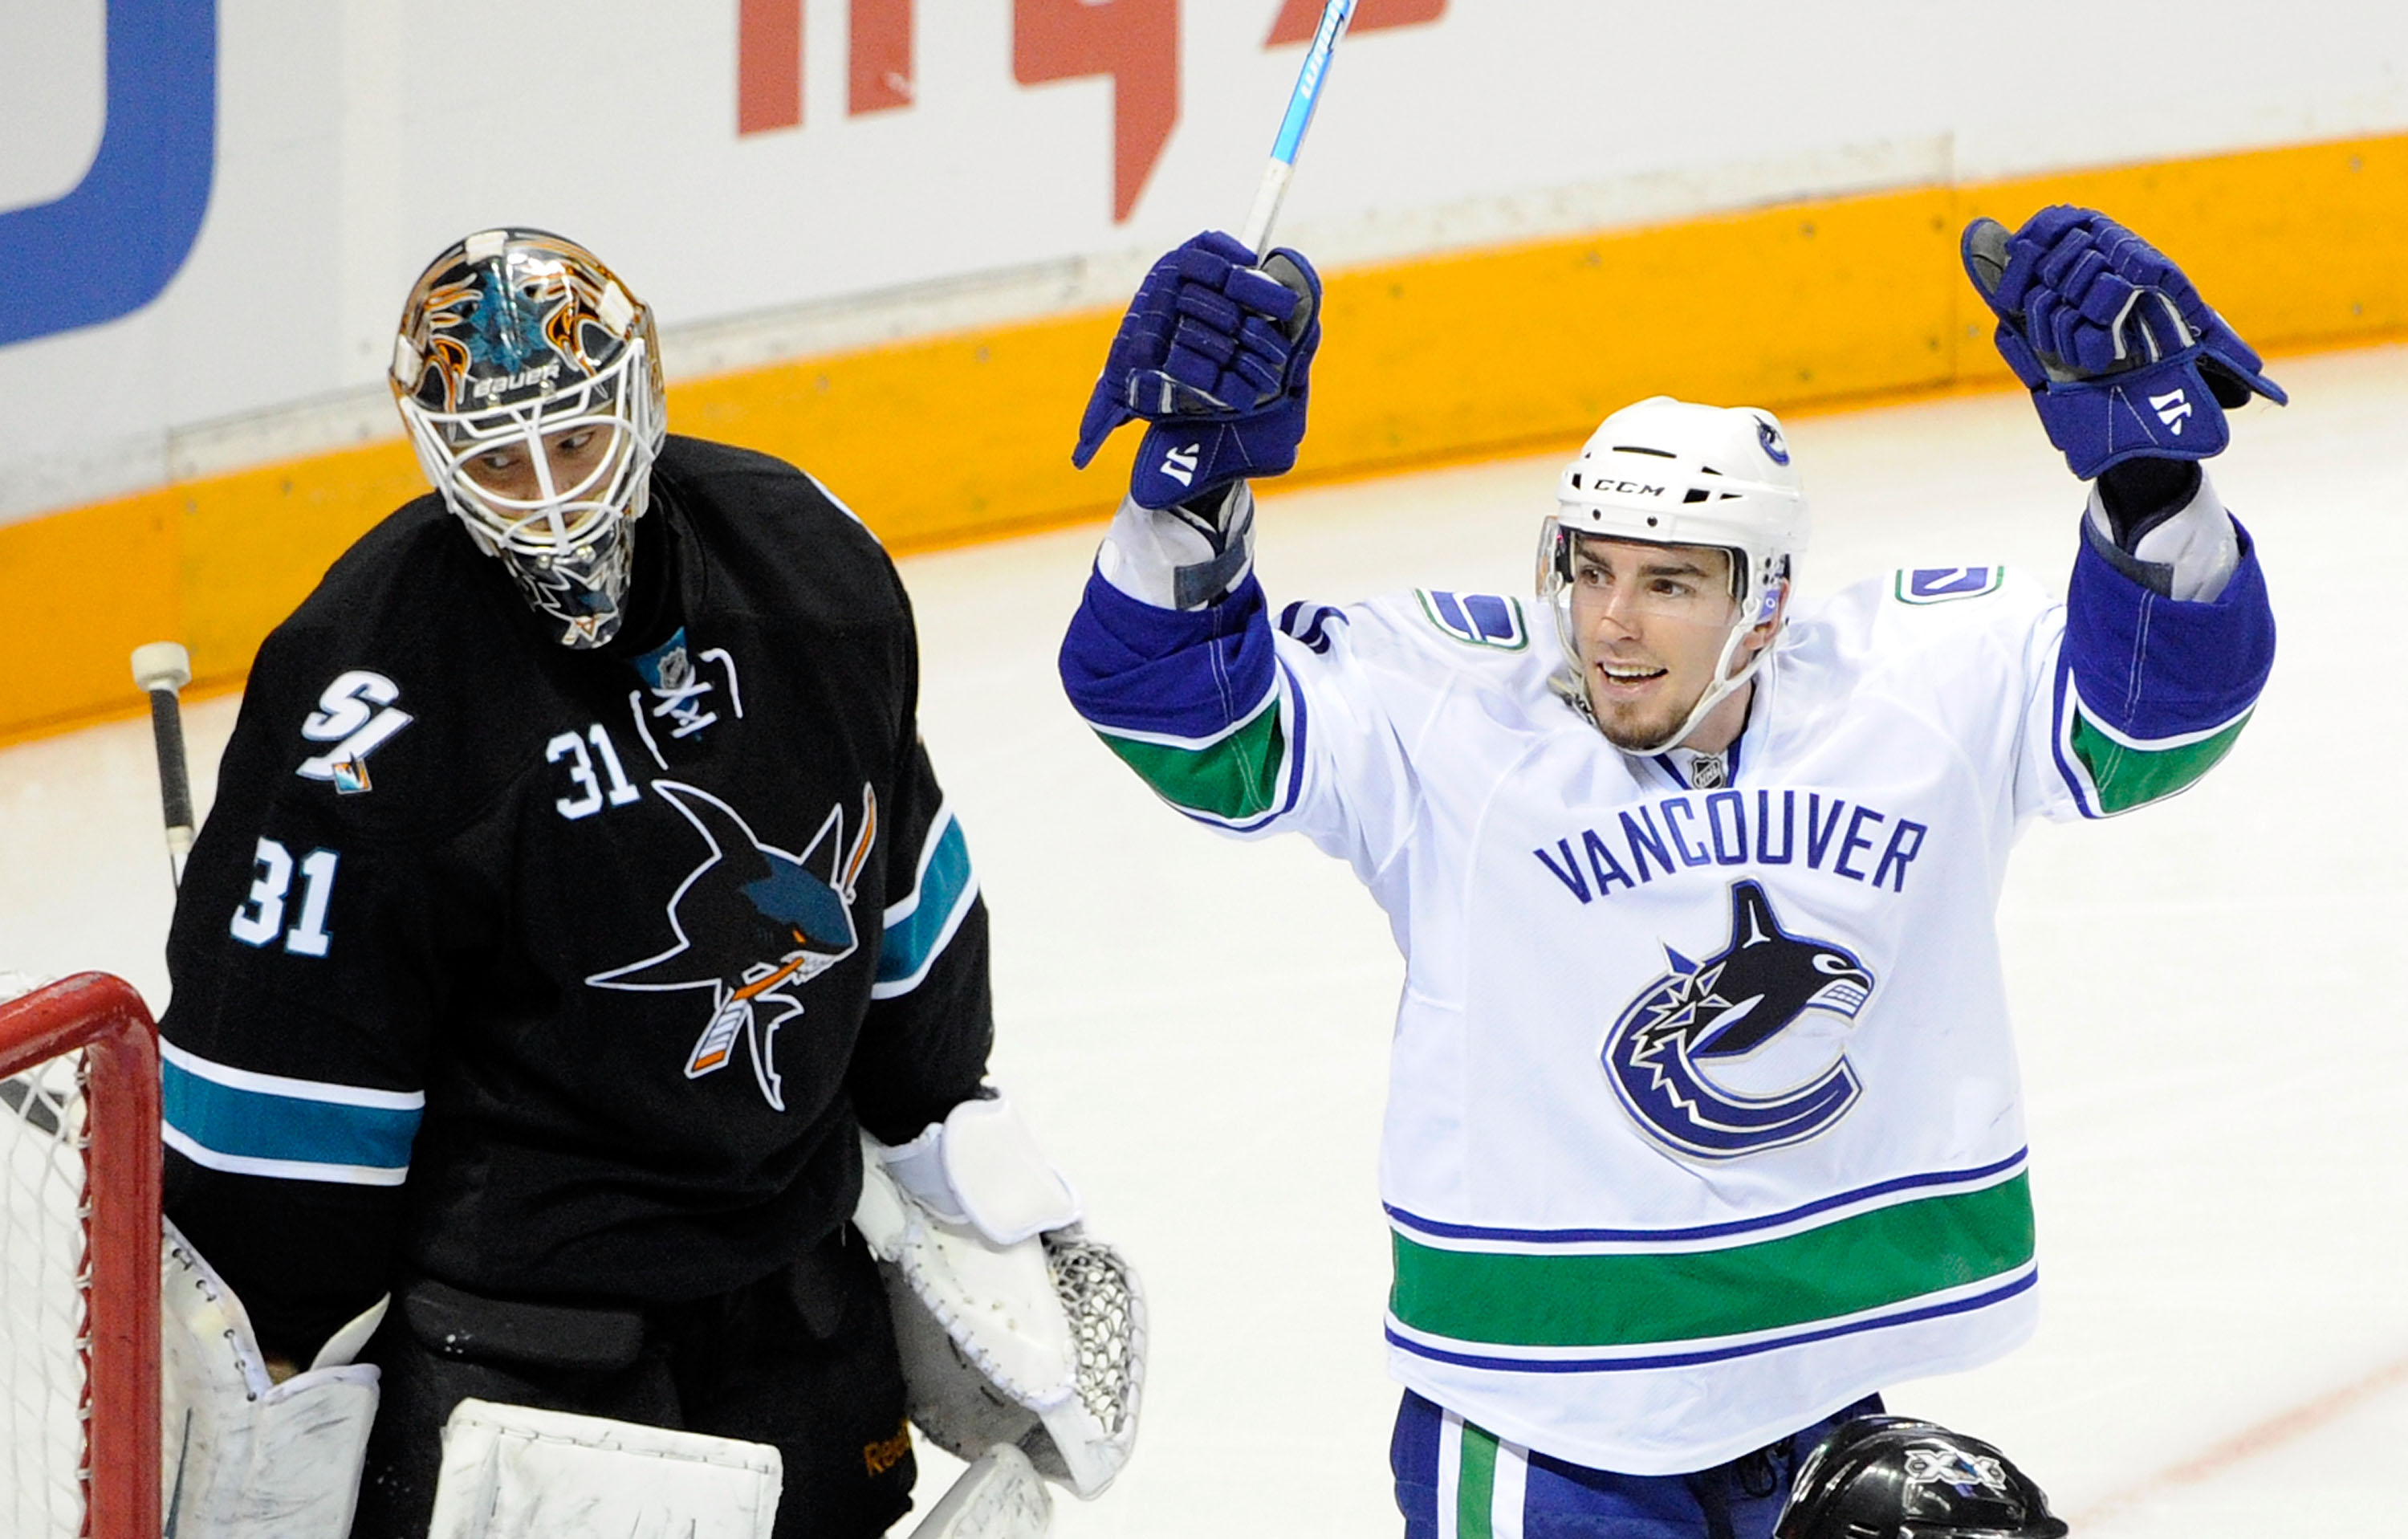 SAN JOSE, CA - MAY 22:  Alex Burrows #14 of the Vancouver Canucks celebrates after scoring in the third period as goaltender Antti Niemi #31 of the San Jose Sharks looks on in Game Four of the Western Conference Finals during the 2011 Stanley Cup Playoffs